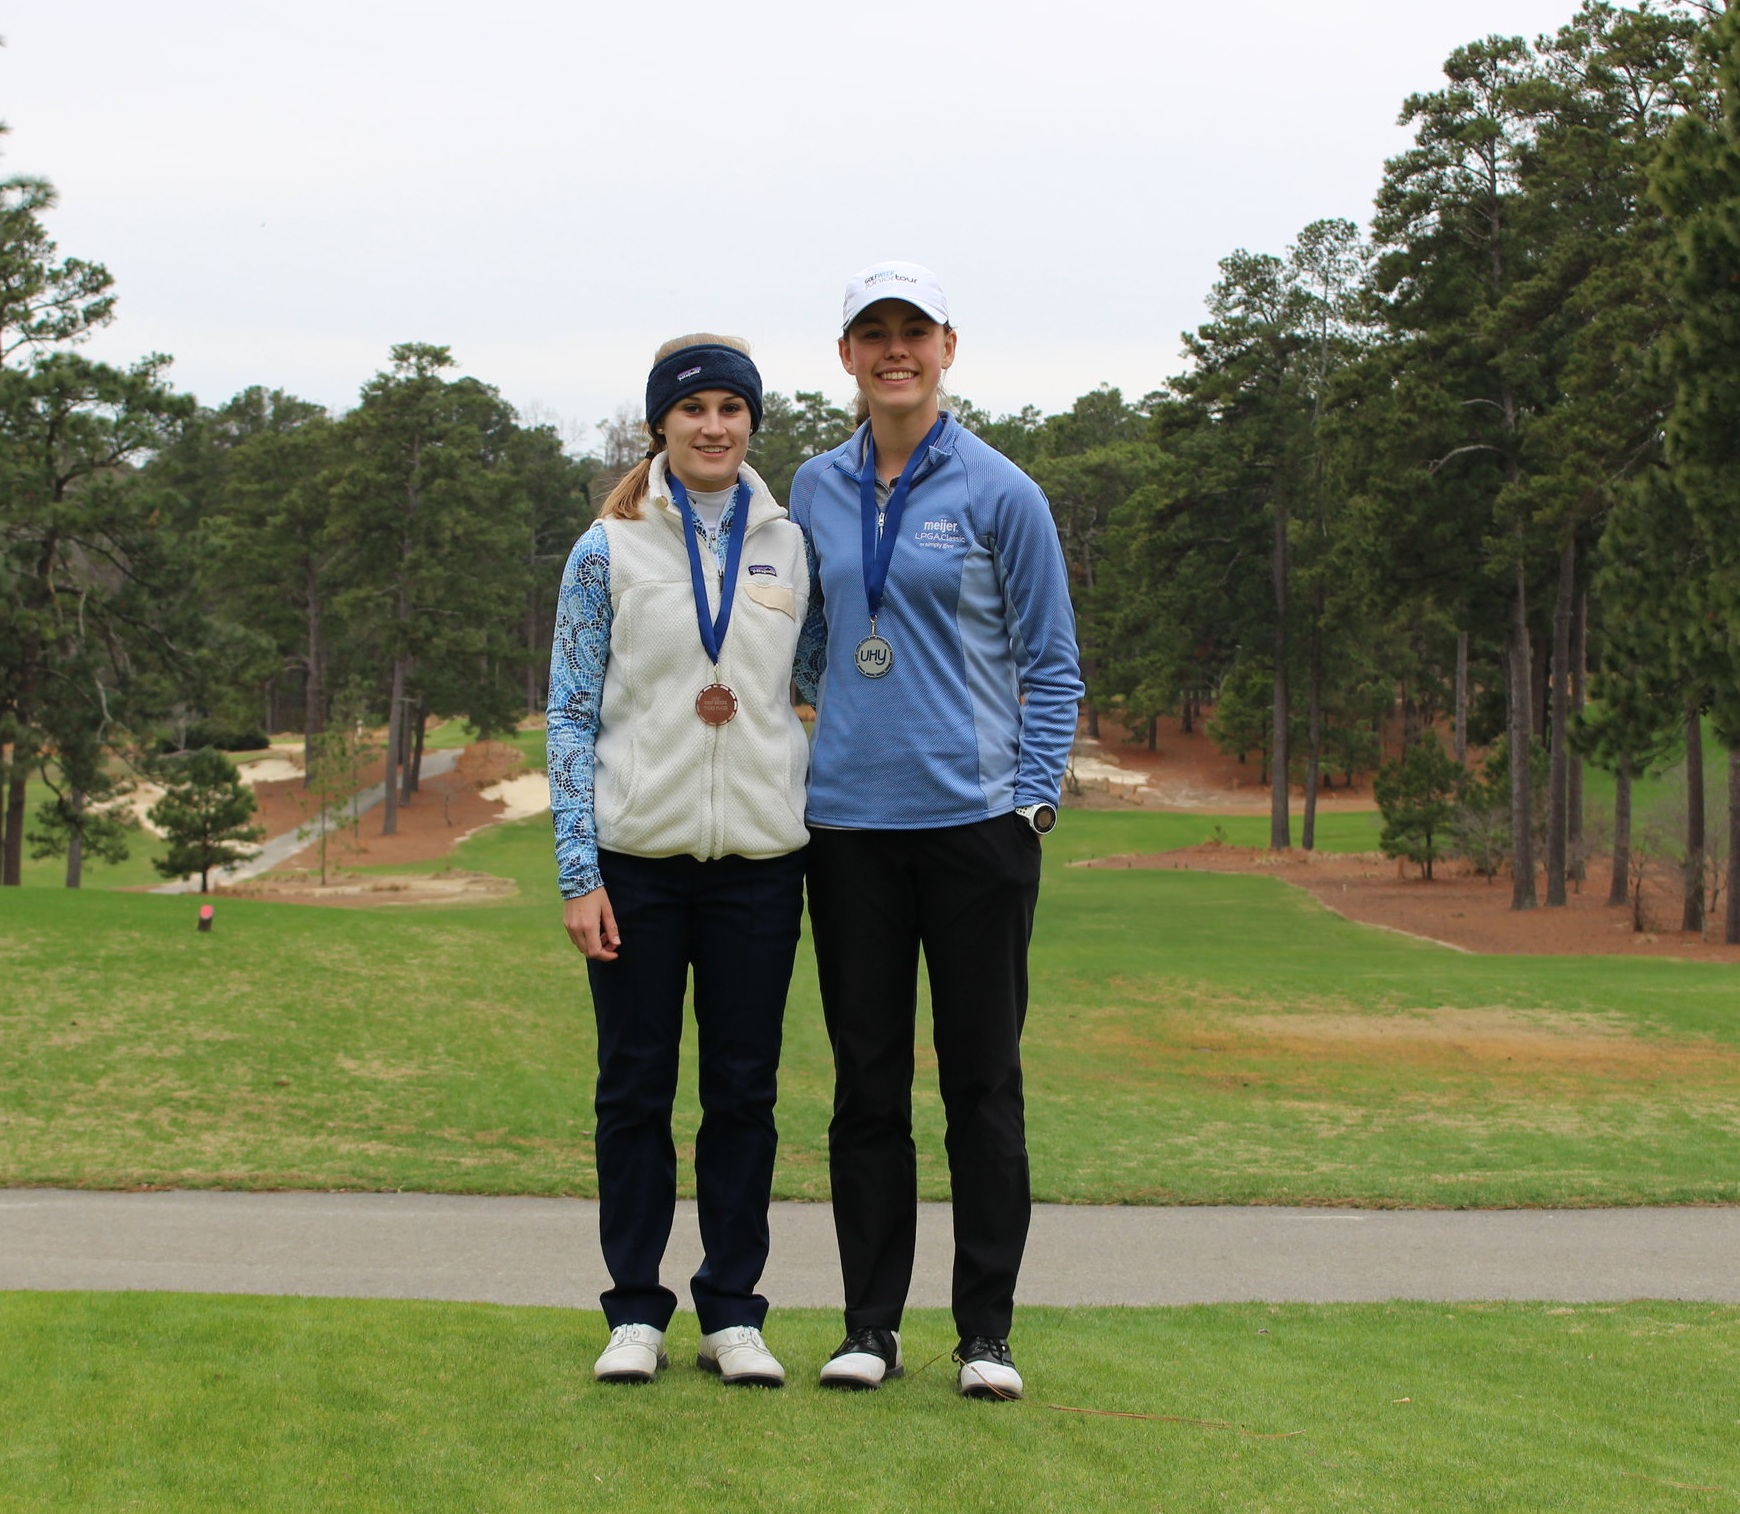 - Lilia Henkel (R) was the girls runner-up, shooting 82-89, while Grayson Warren (L) finished 3rd with a 84-88.